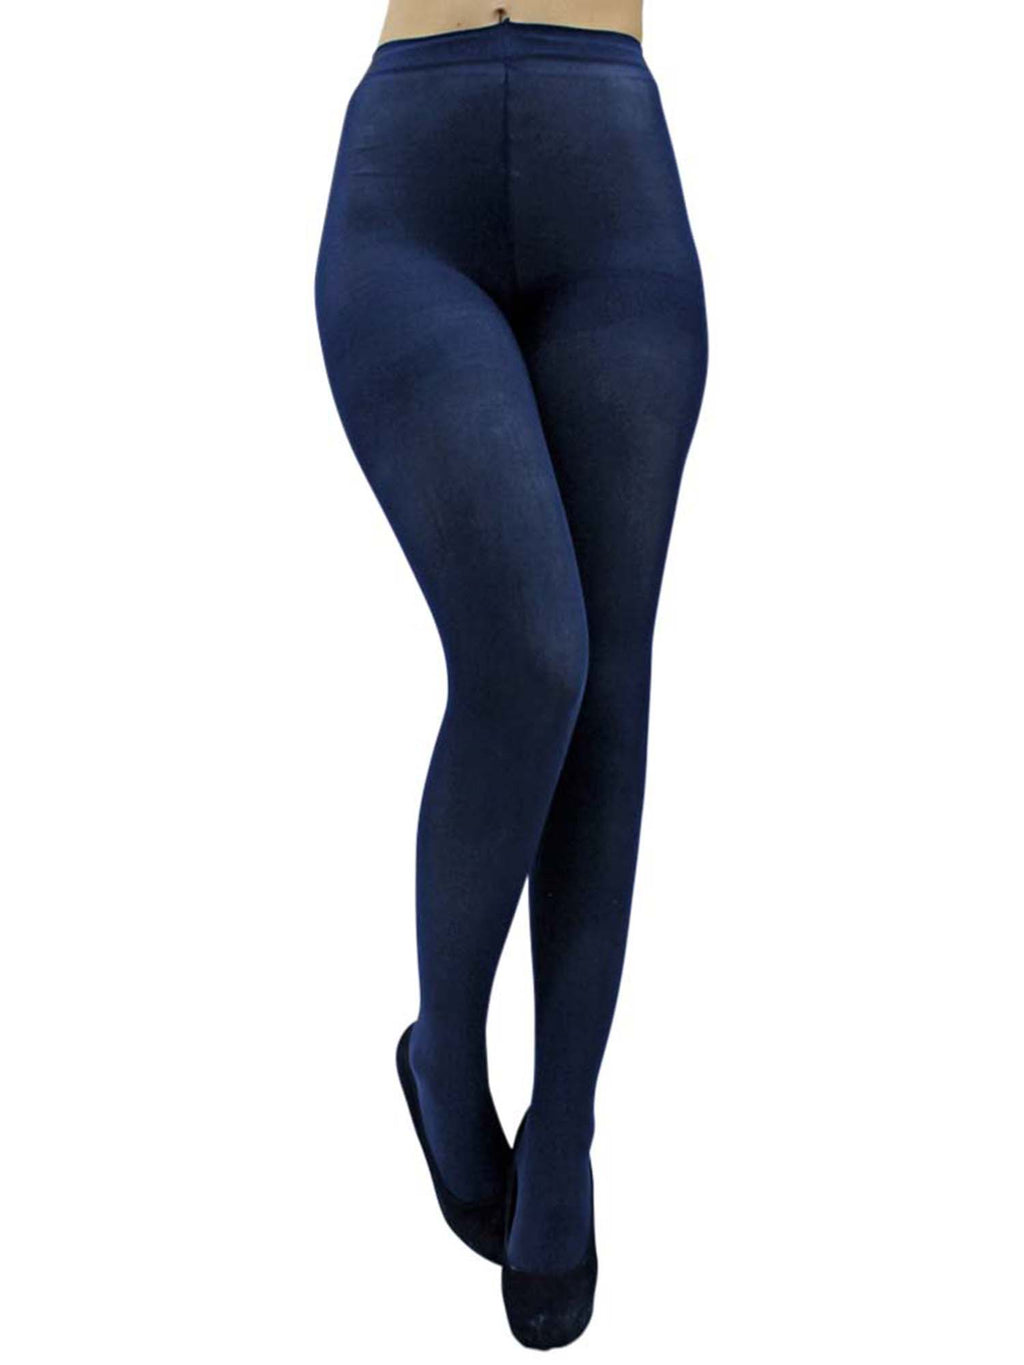 3932f8a37b8 Stretchy Opaque Pantyhose Tights